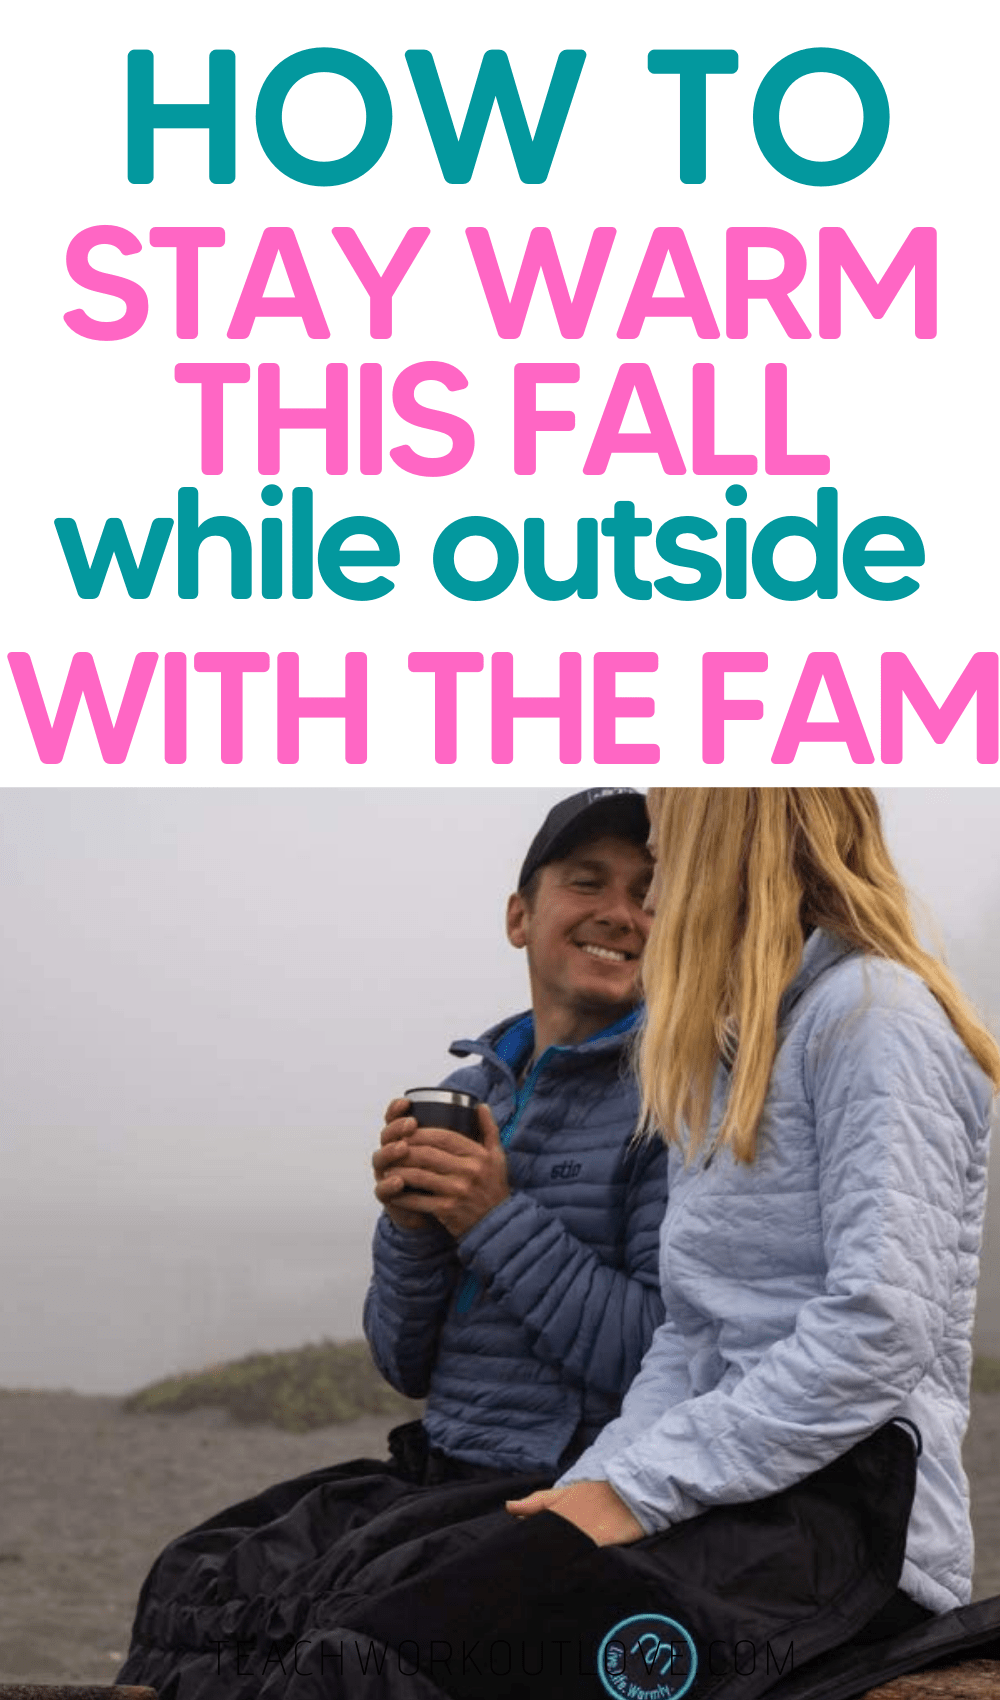 How can you stay warm while attending outdoor activities this fall? We have the perfect solution for the activities that you are doing!